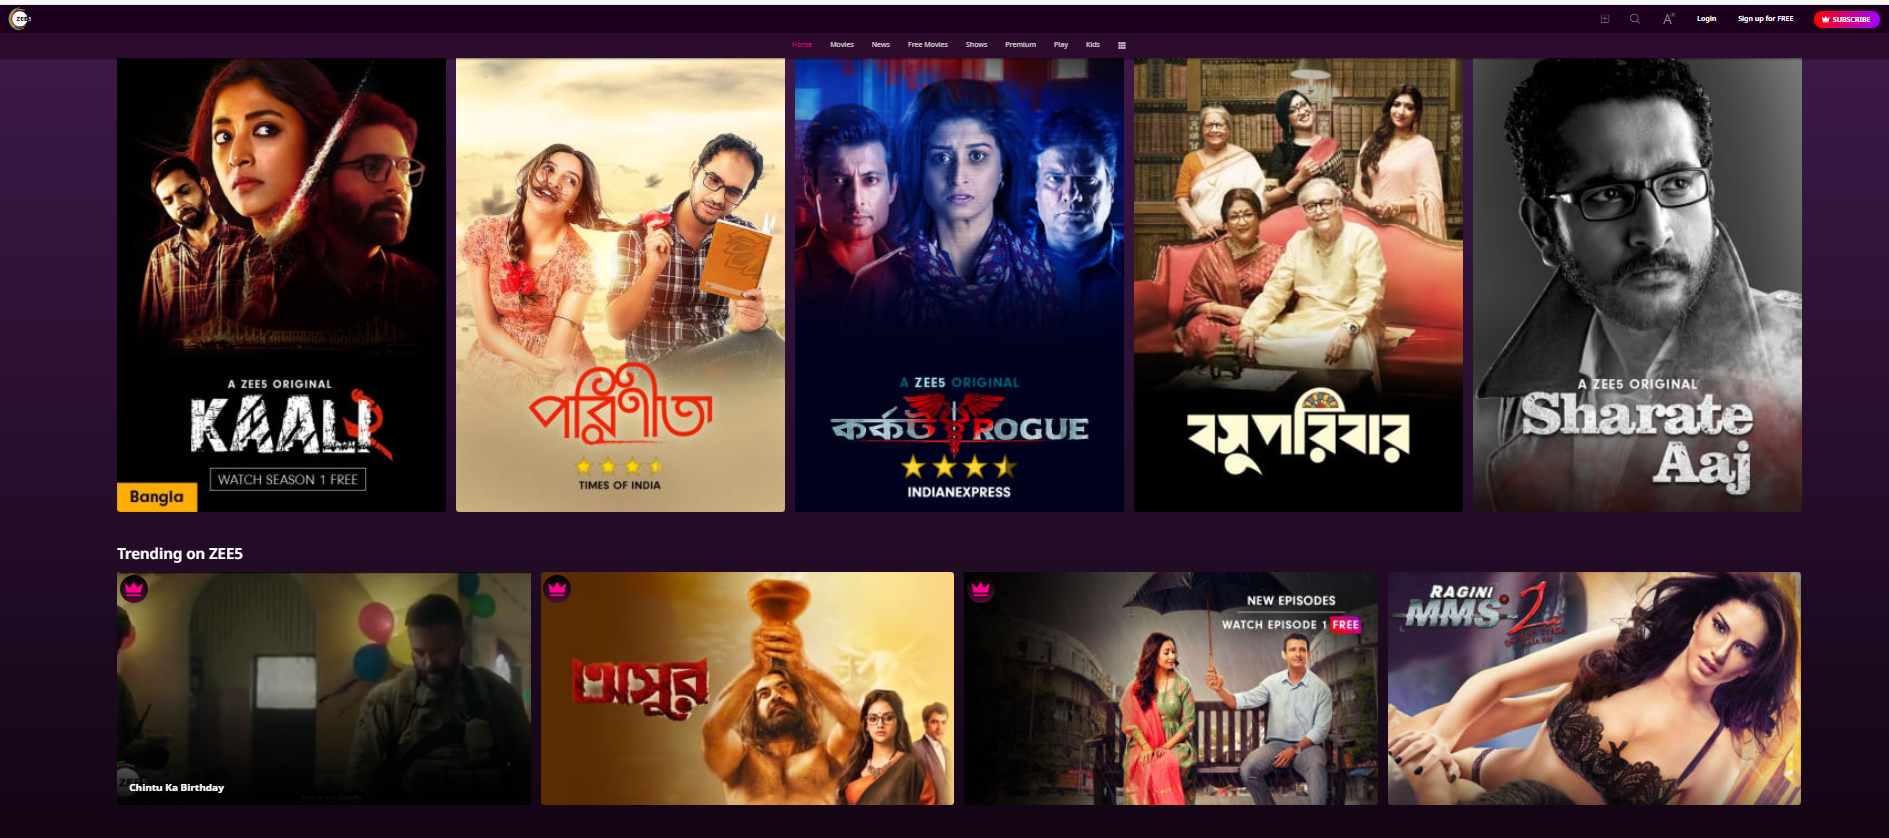 ZEE5 - Watch Bollywood Movies Online